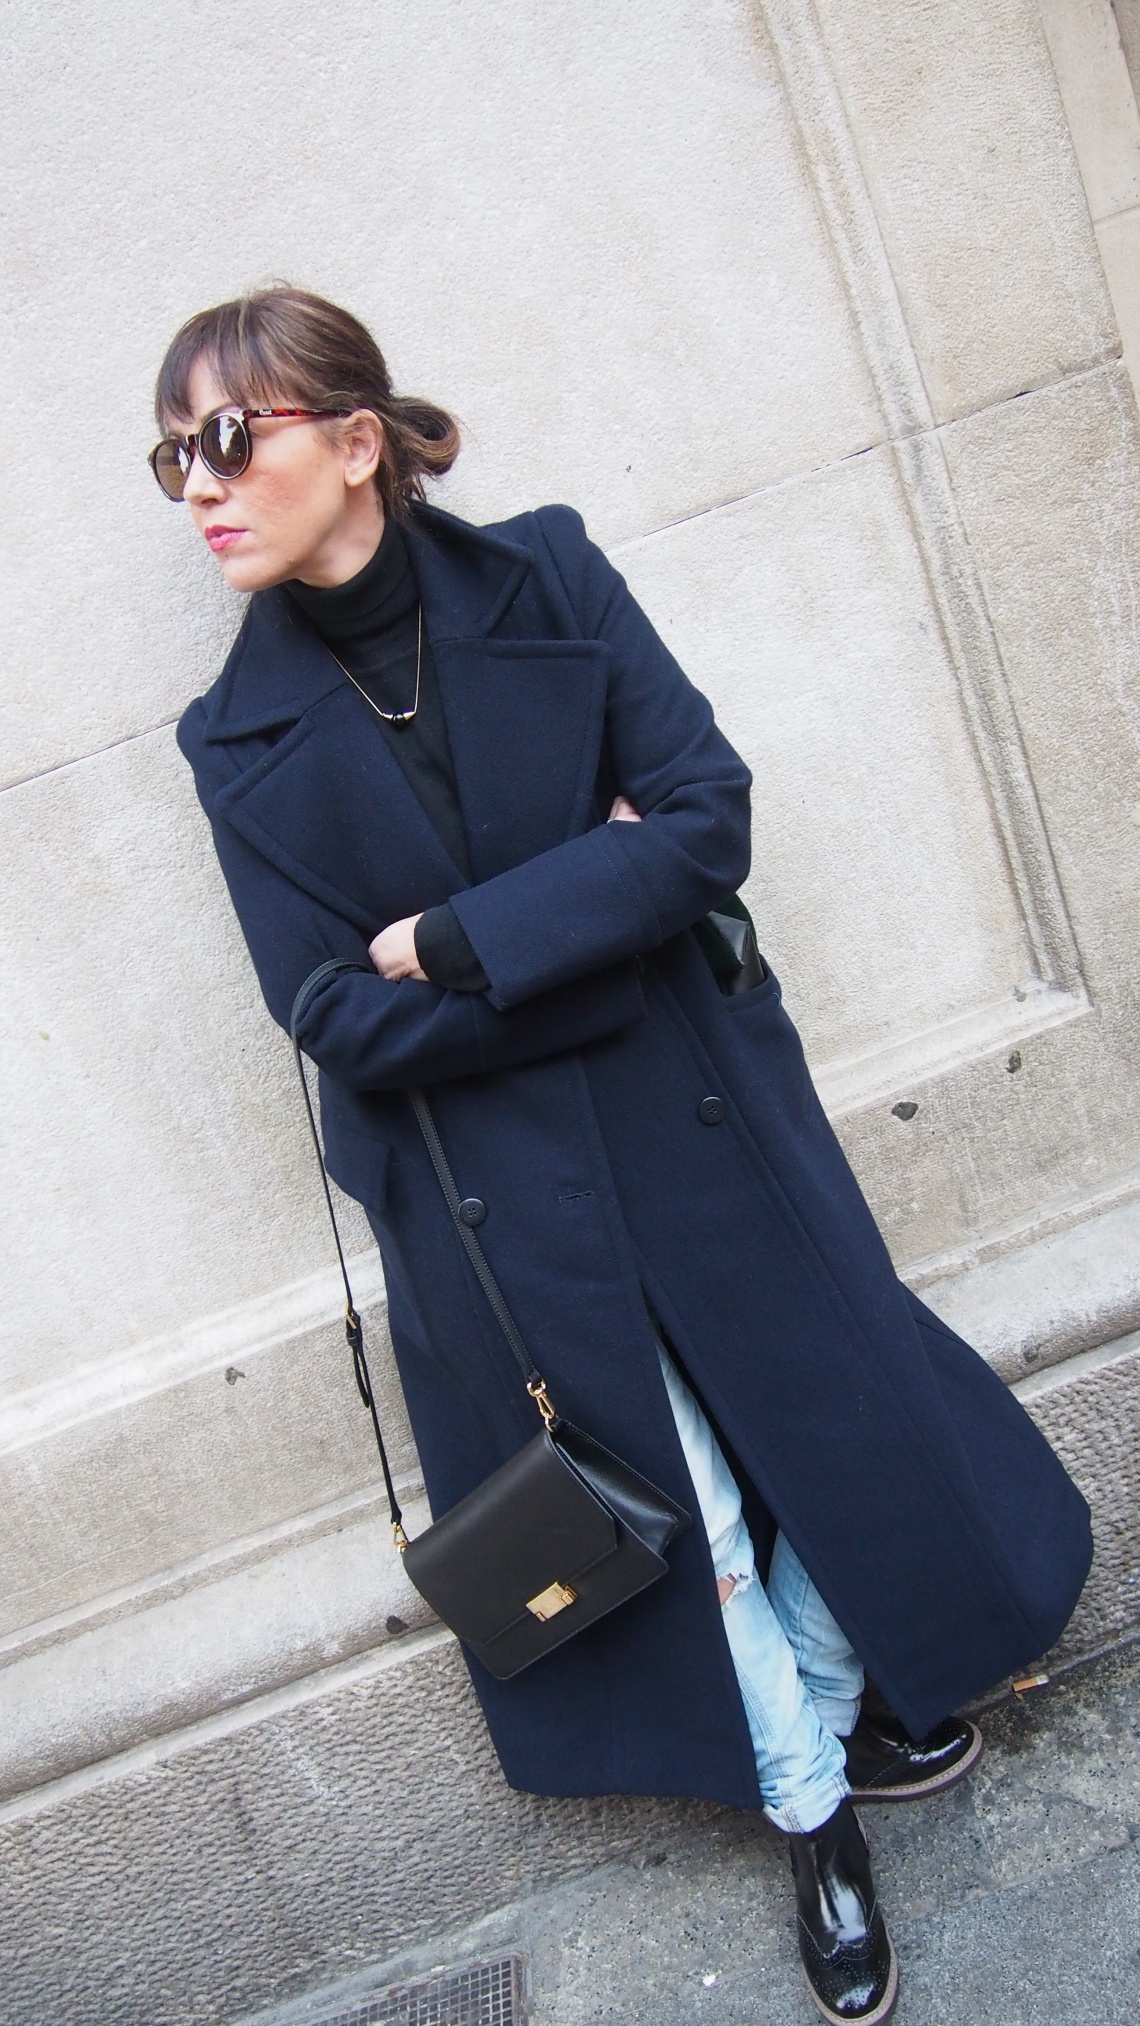 long coat normcore girl influencer oxford boots